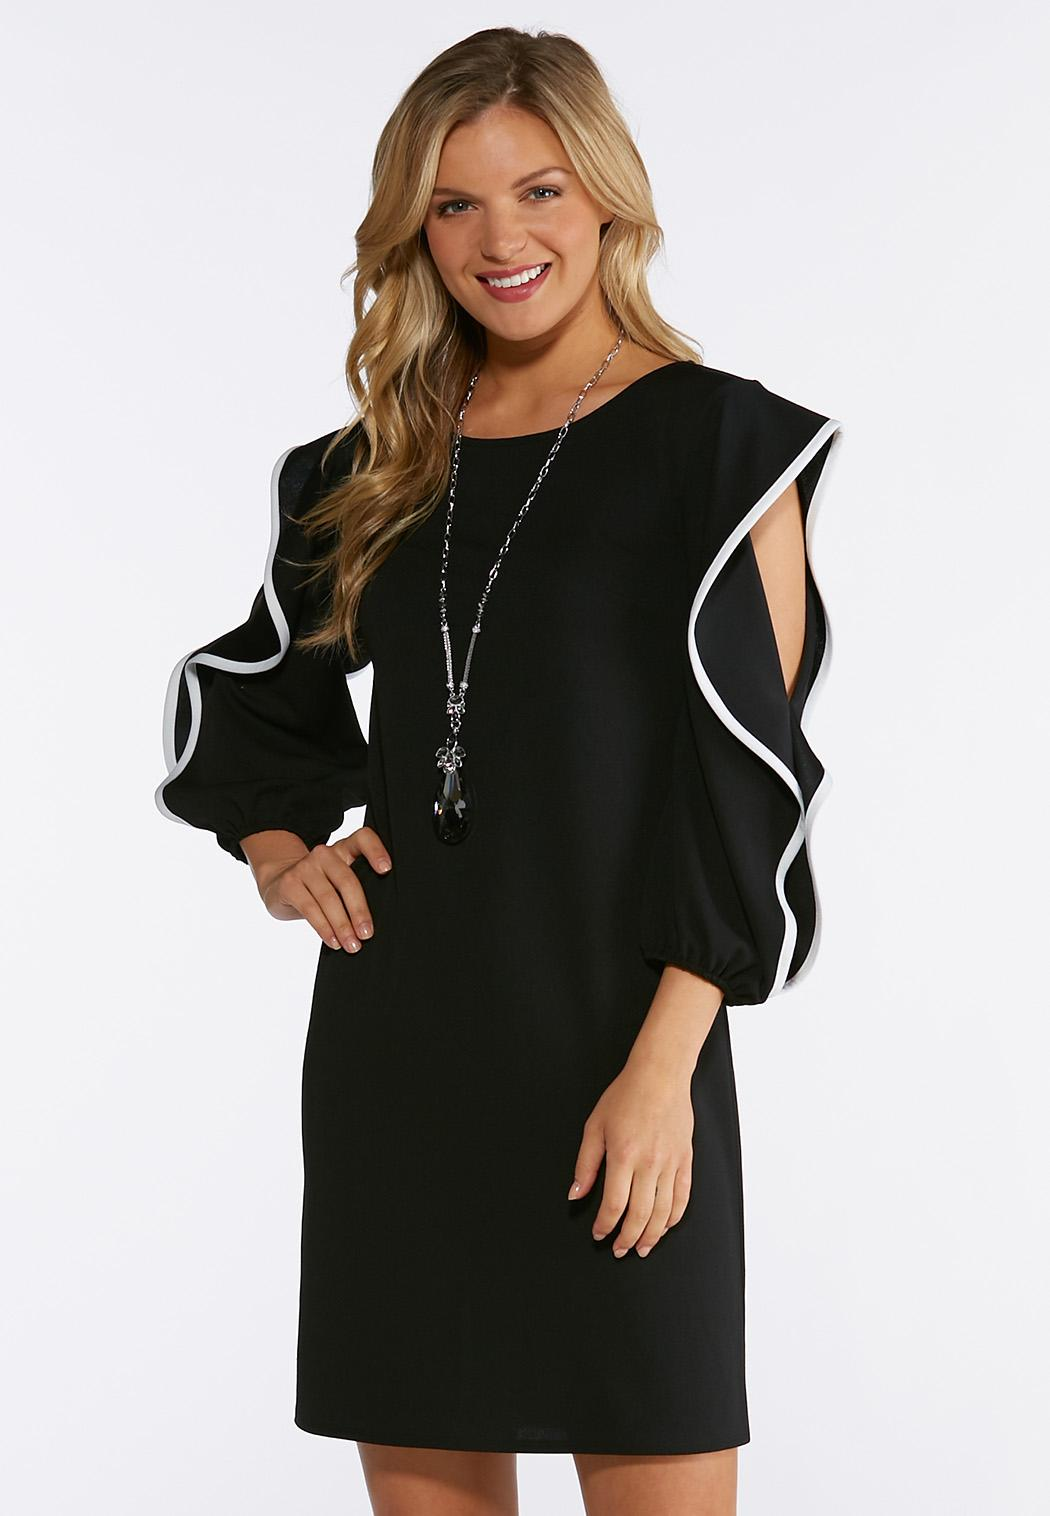 046763068f6 Flounced Sleeve Shift Dress alternate view Flounced Sleeve Shift Dress